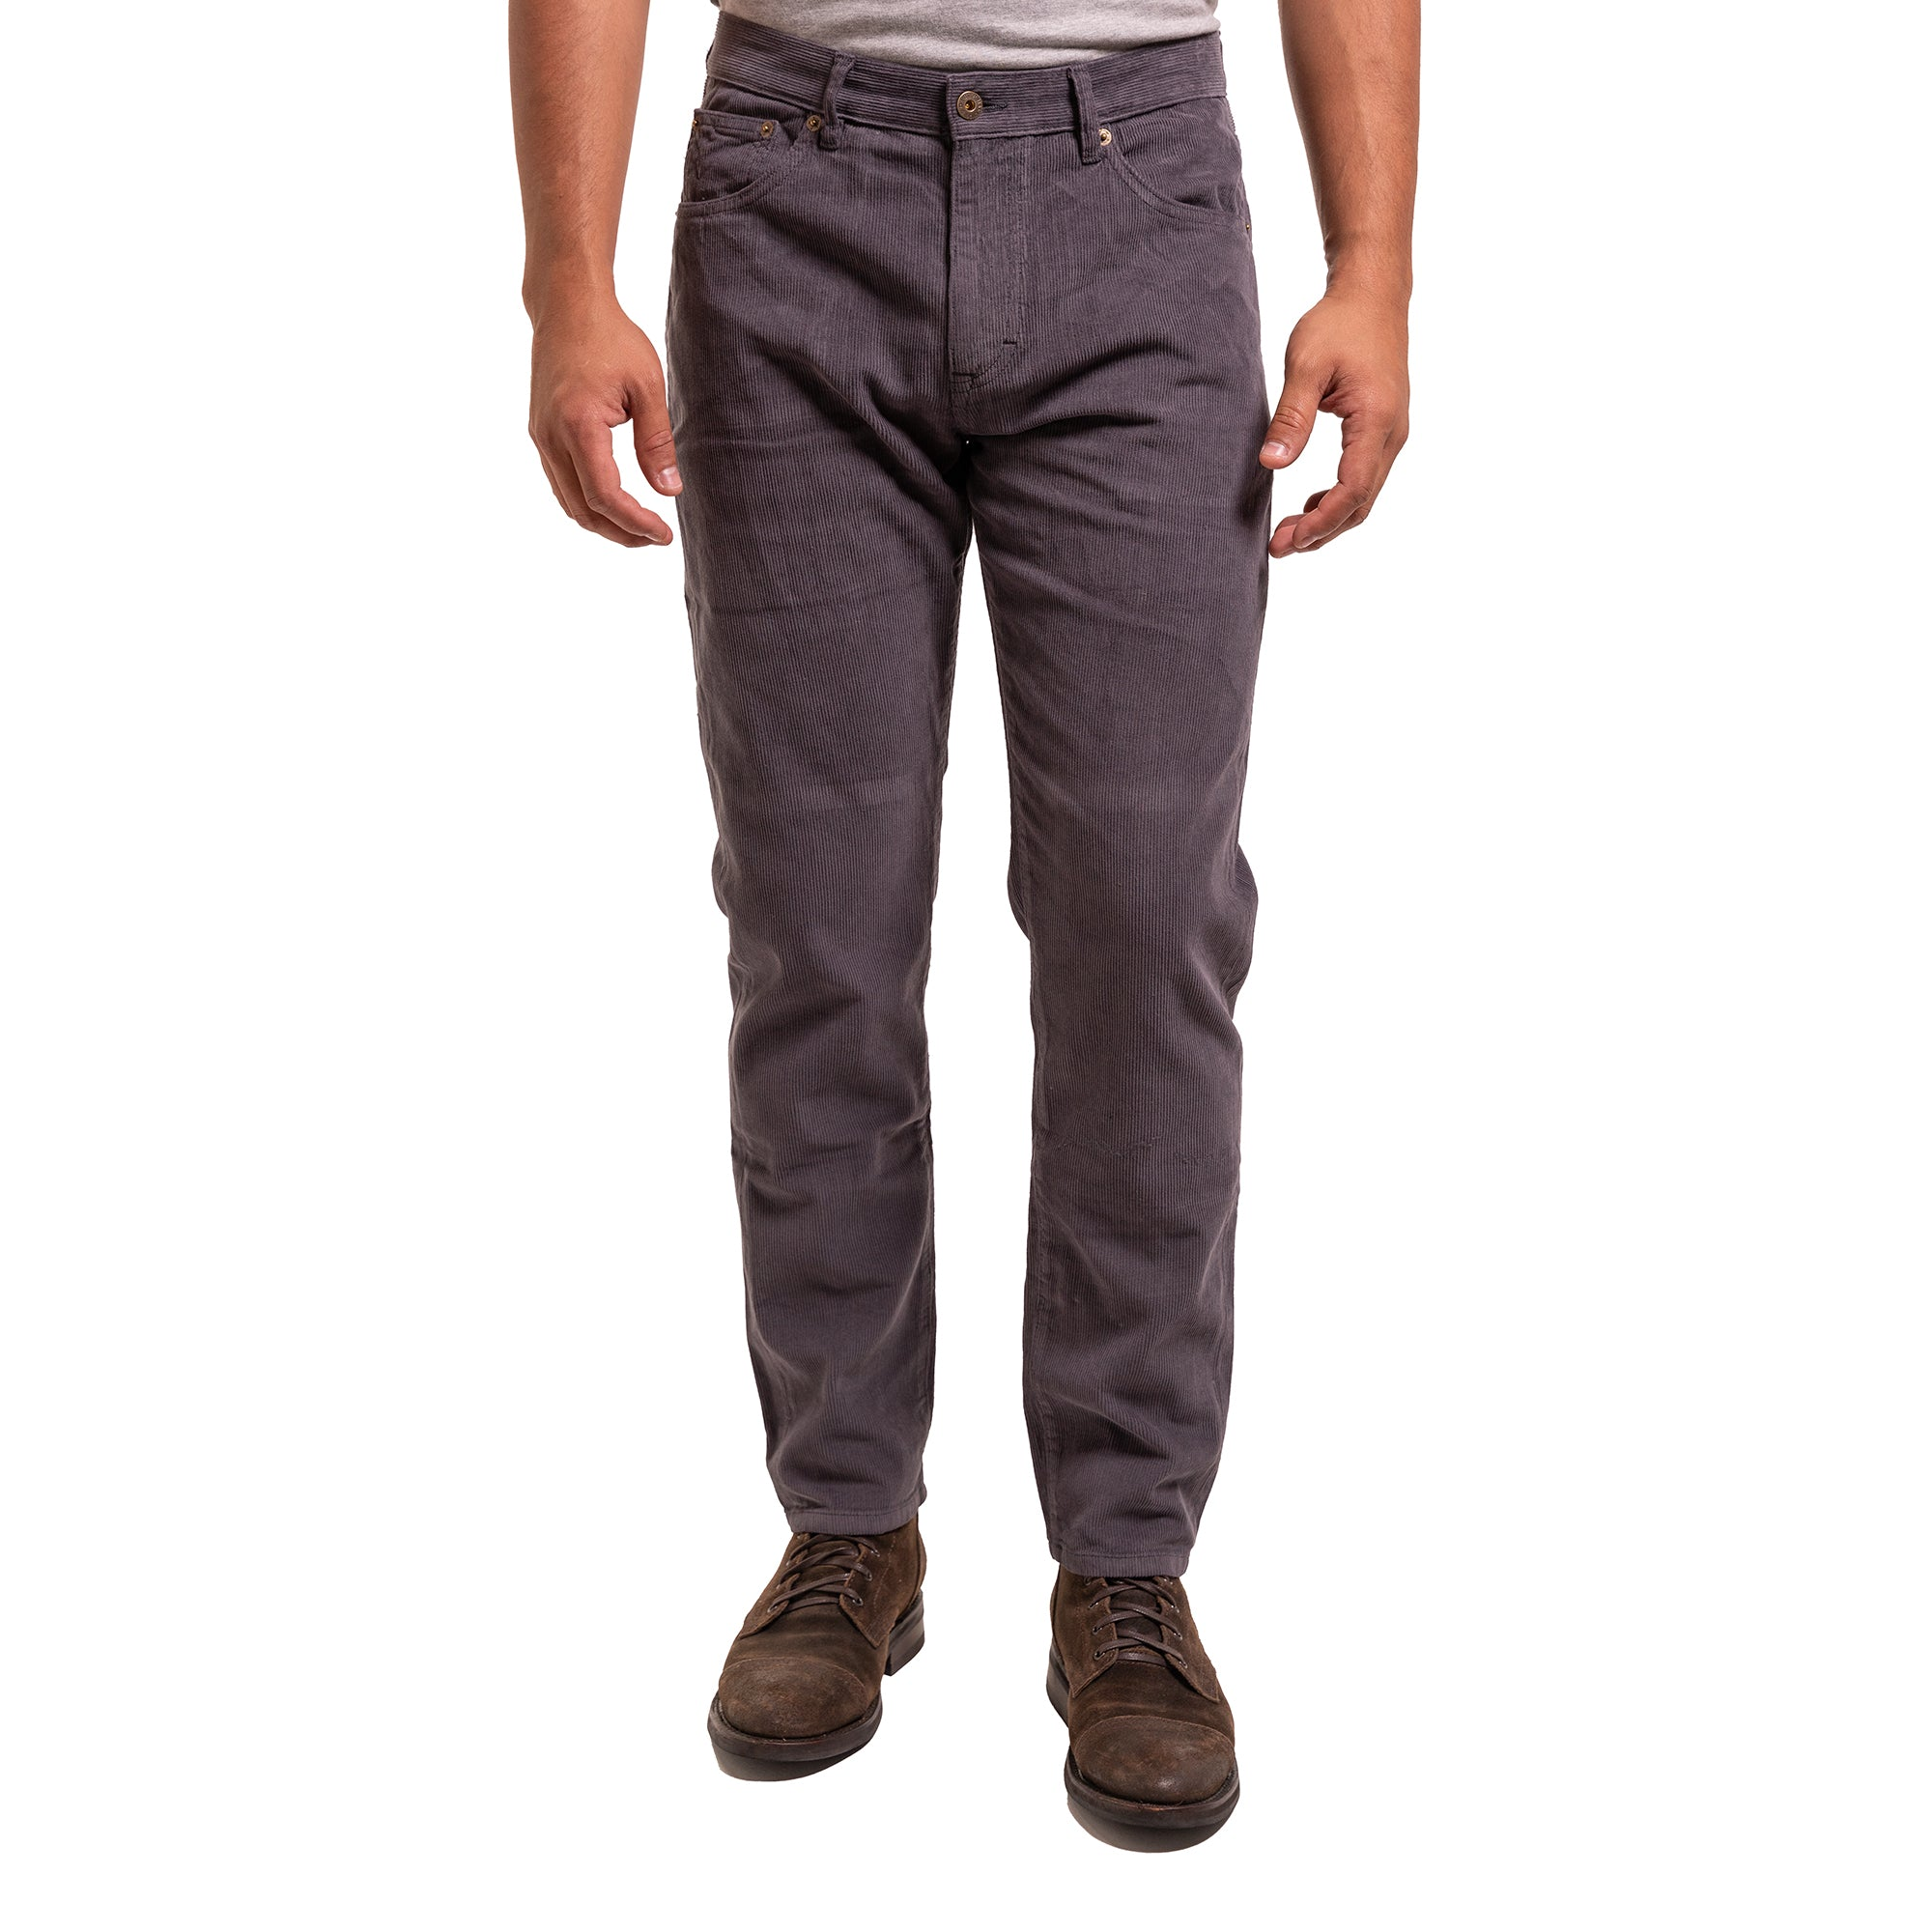 Kittredge Cords - Grey